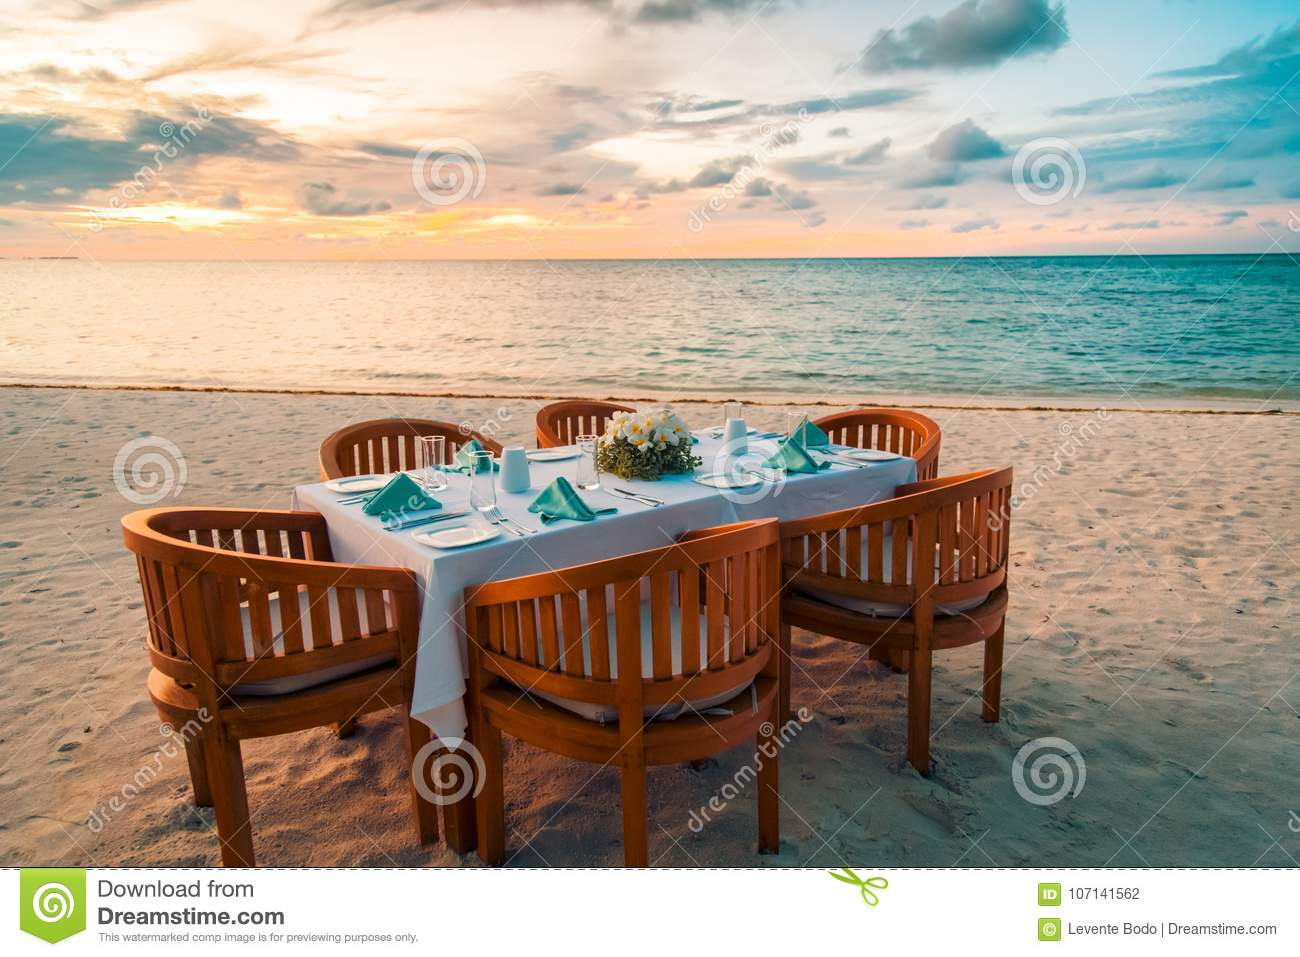 Download Beach Dinner Set Up For Couples Or Honeymooners. Sunset Beach  Scene With Wooden